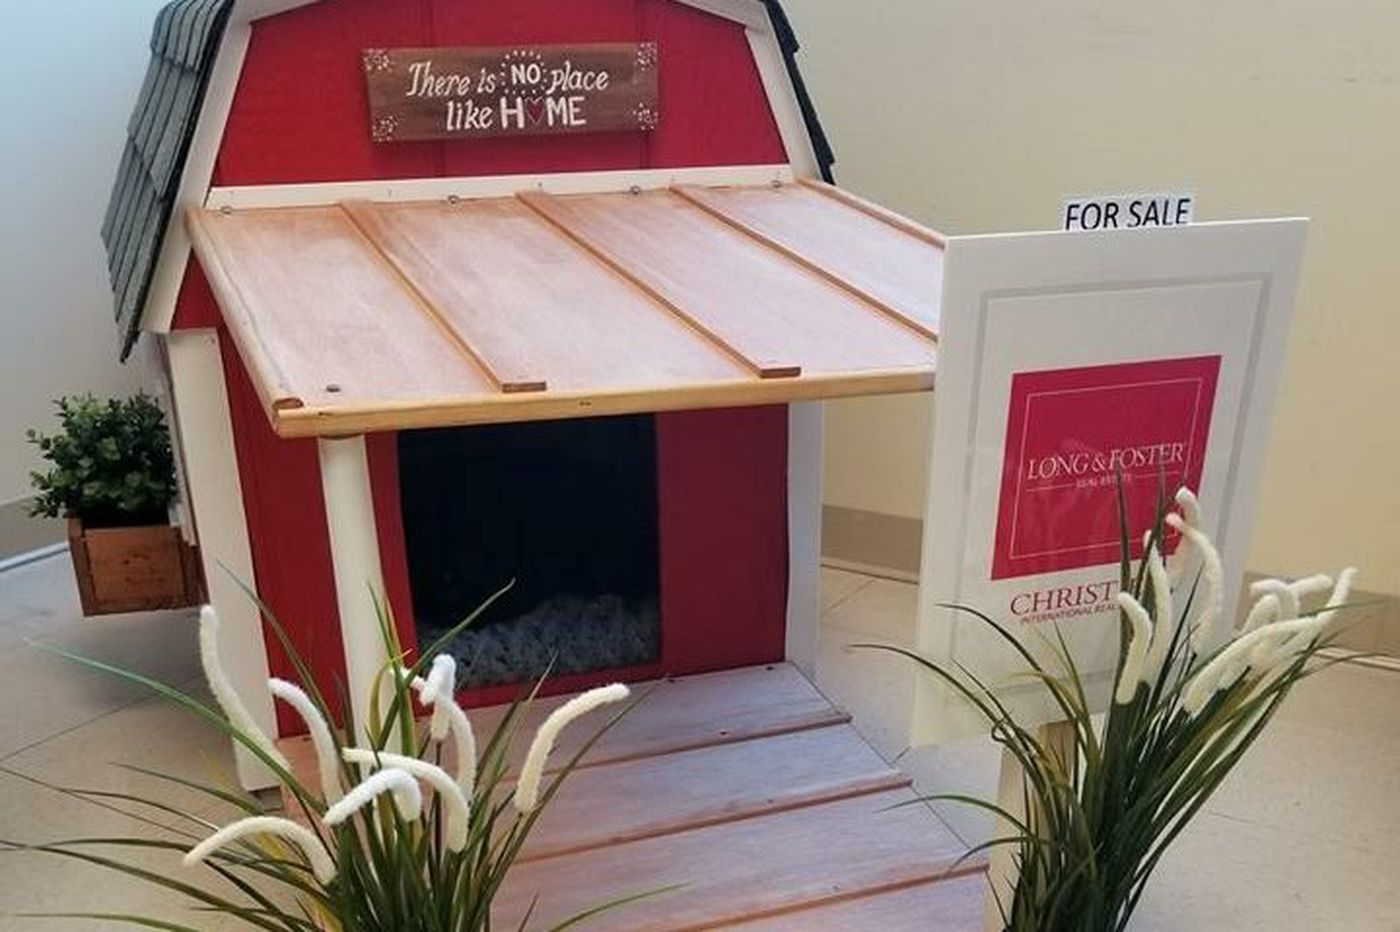 Find your dream (dog) house at the Philly Home Show this weekend